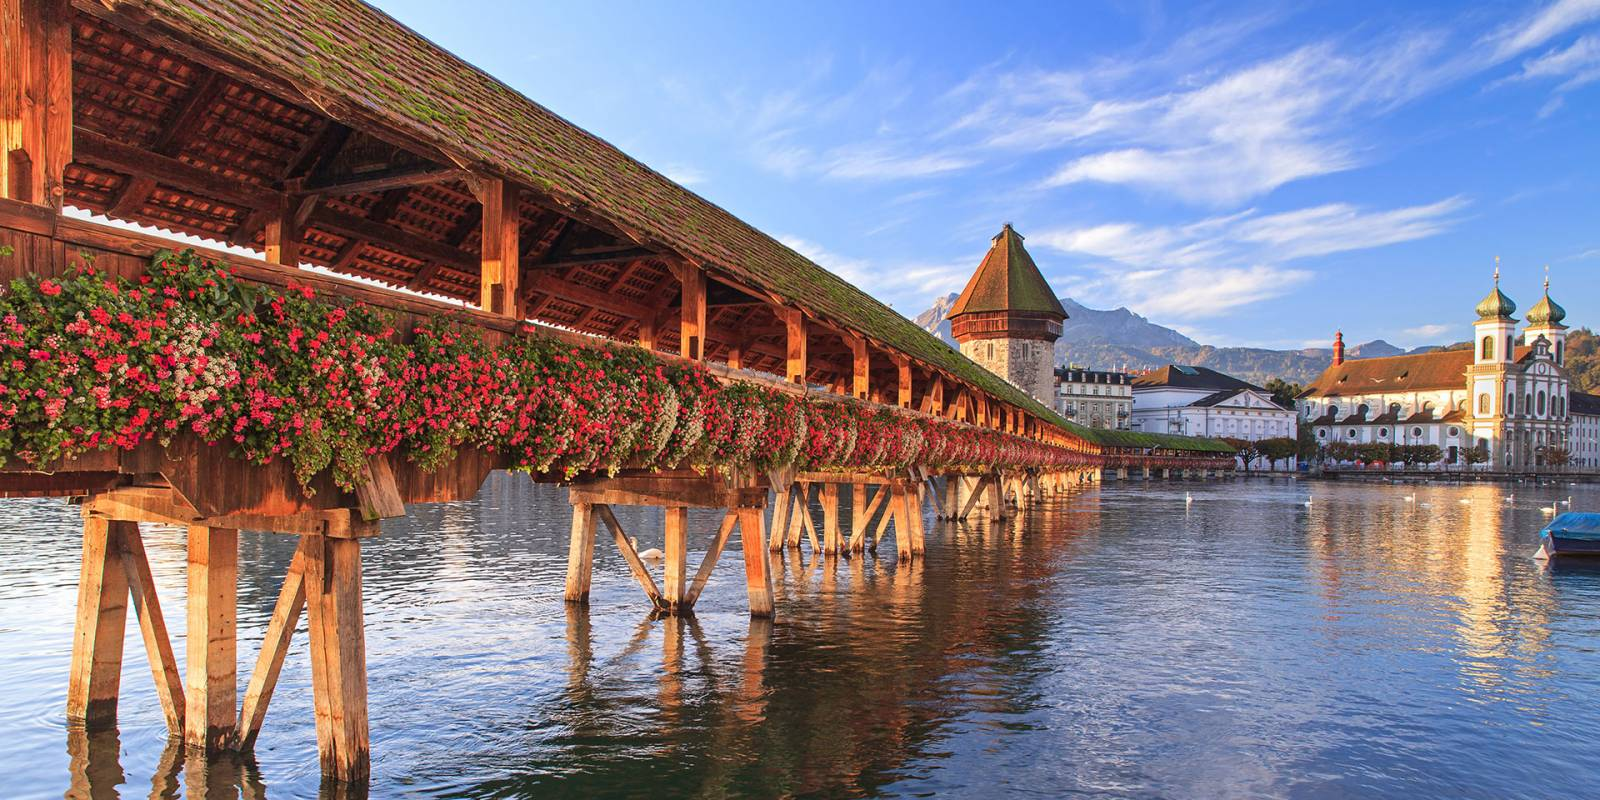 The neighborhood of the Hotel Astoria in Lucerne